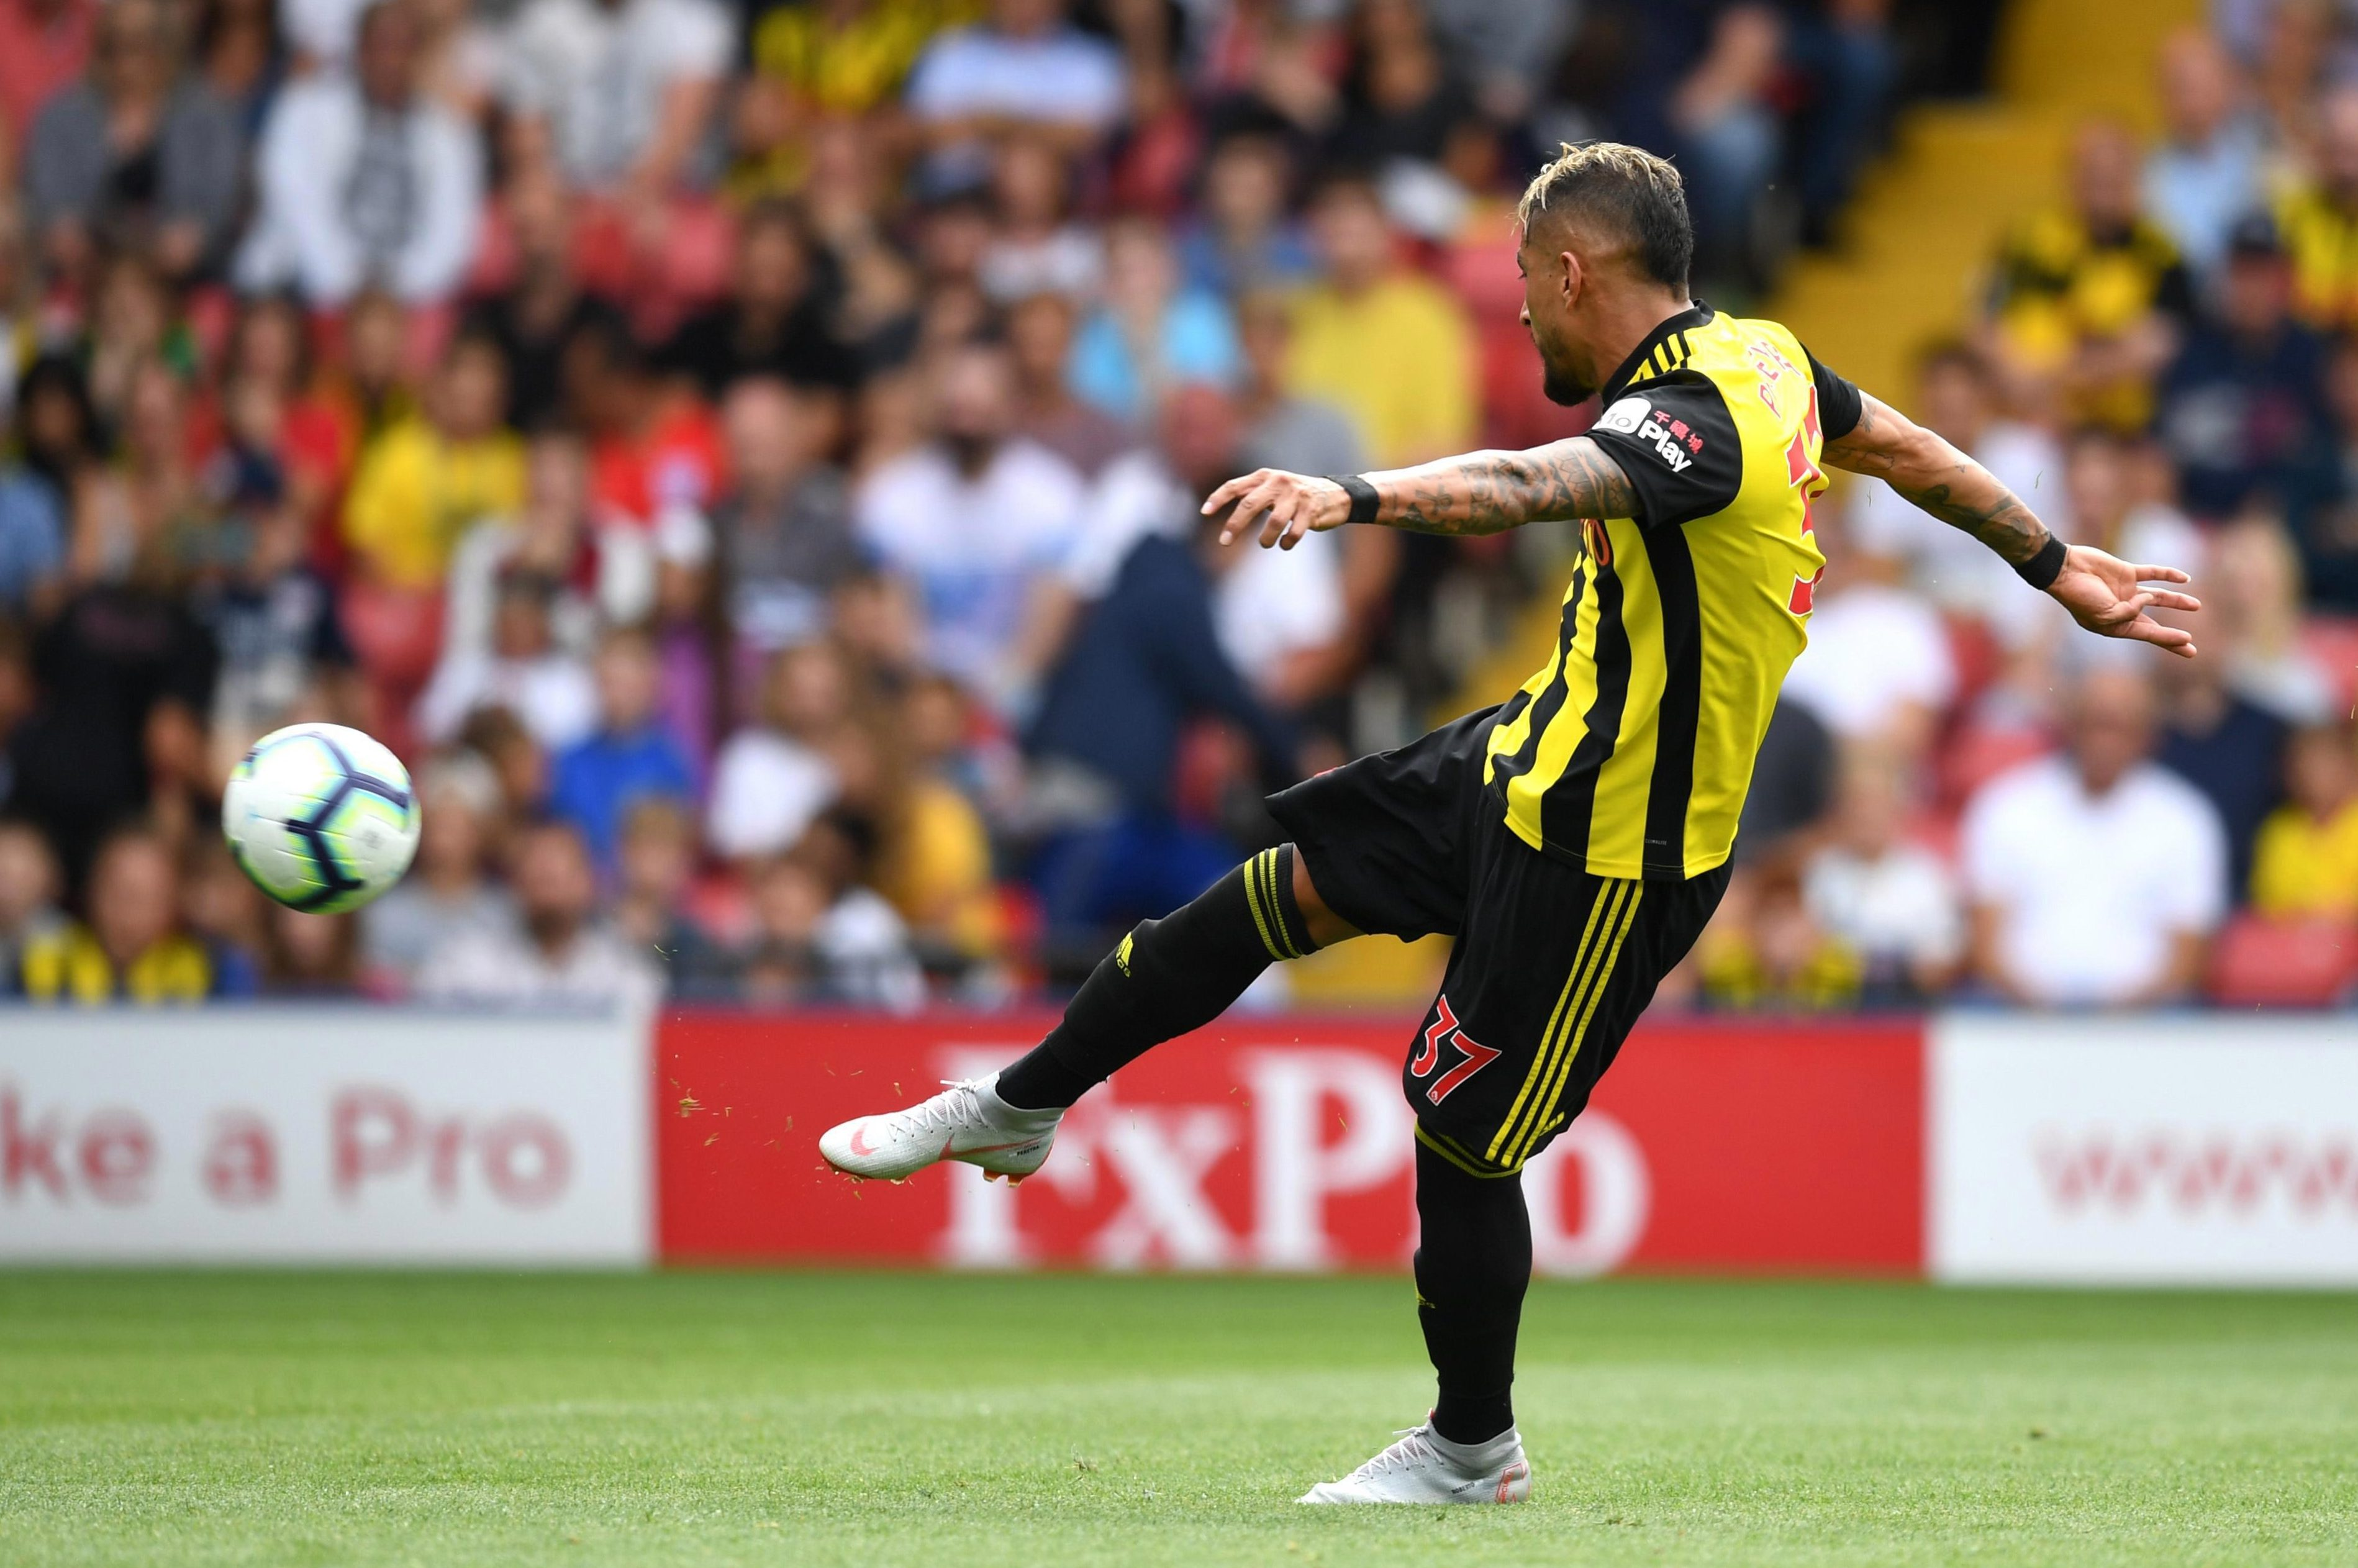 Roberto Pereyra got the Hornets buzzing in their very first game